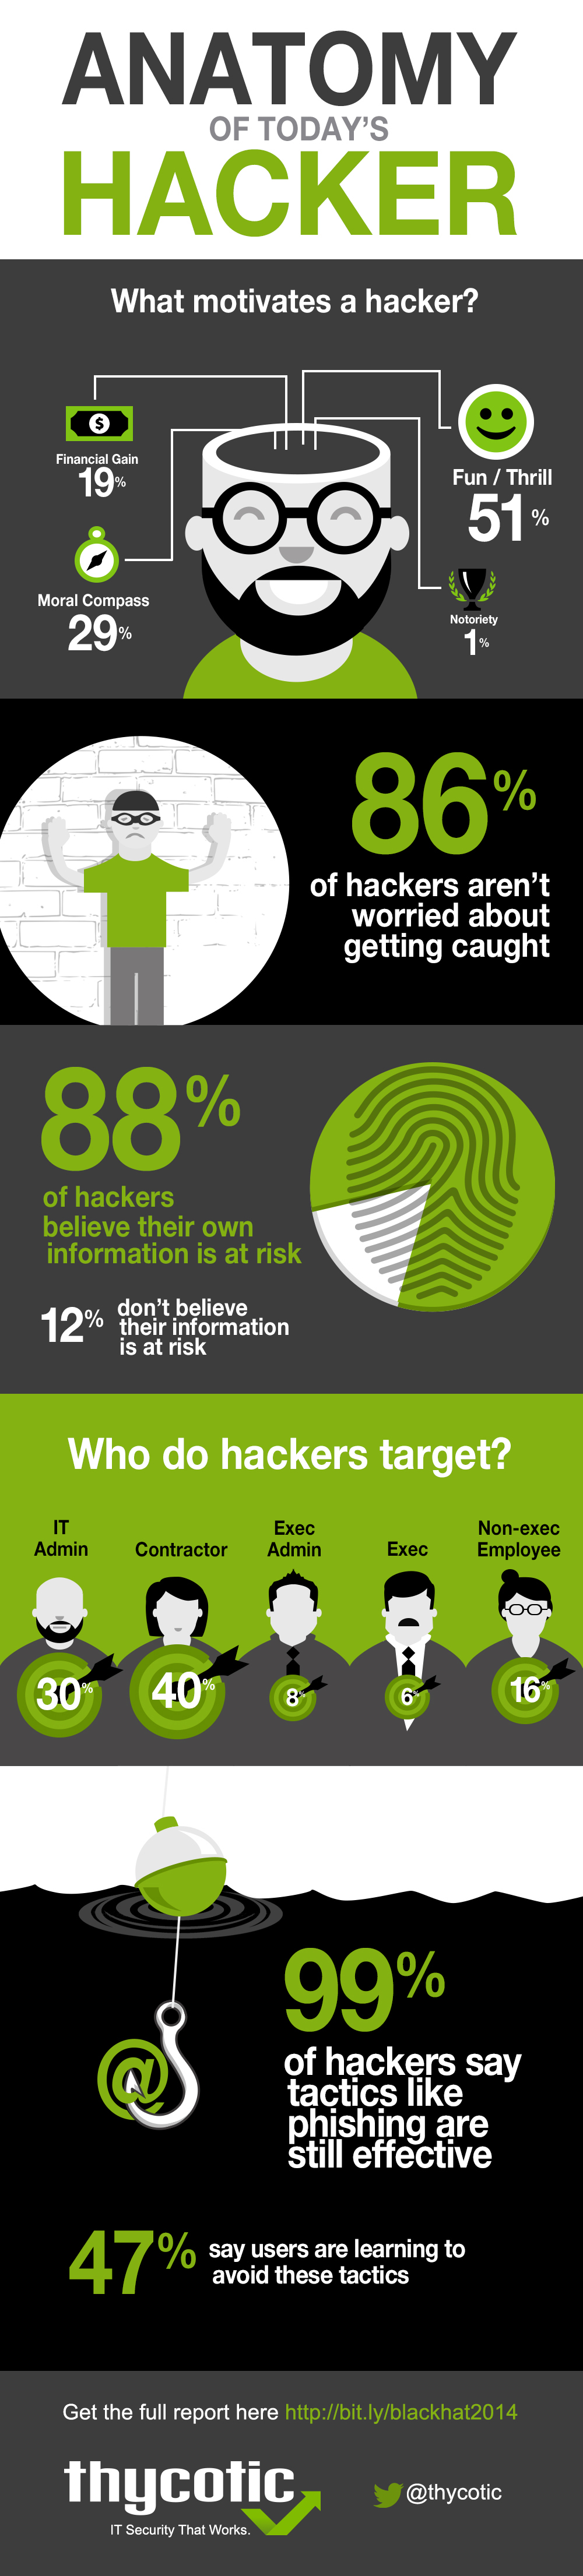 Thycotic Hacker Infographic